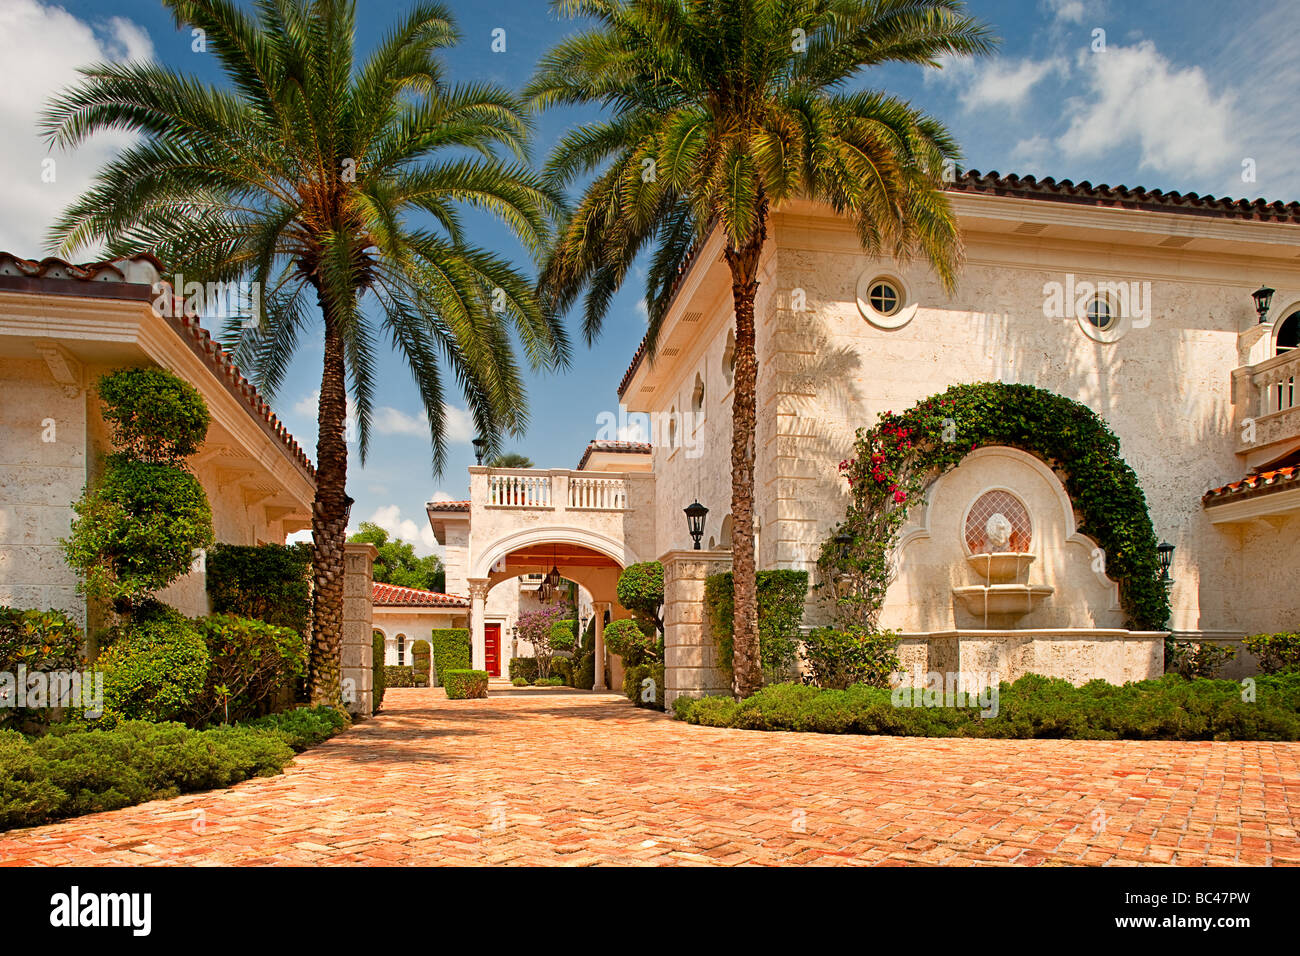 Driveway at a luxury residence in Boca Raton, Florida, USA - Stock Image